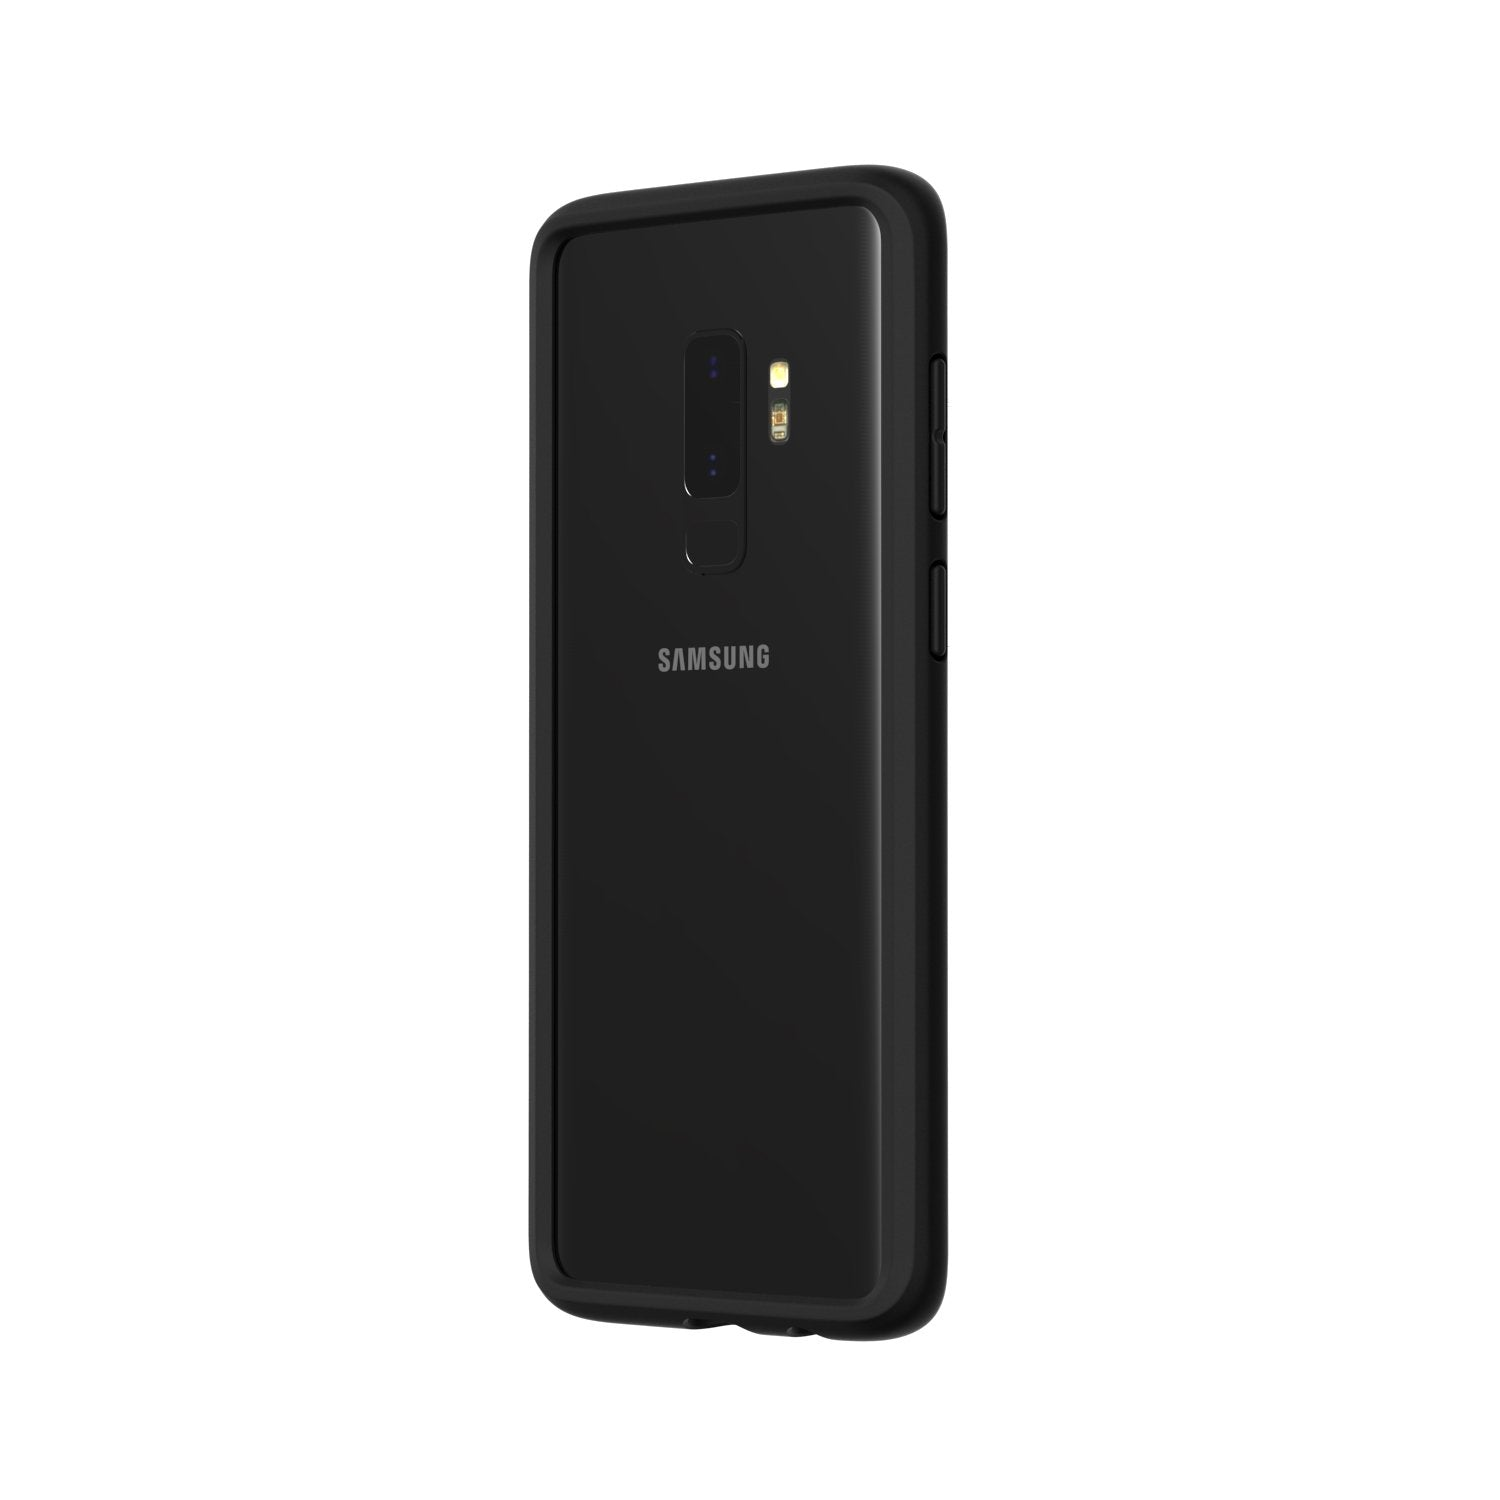 RhinoShield - CrashGuard for Samsung Galaxy S9 Plus - Black